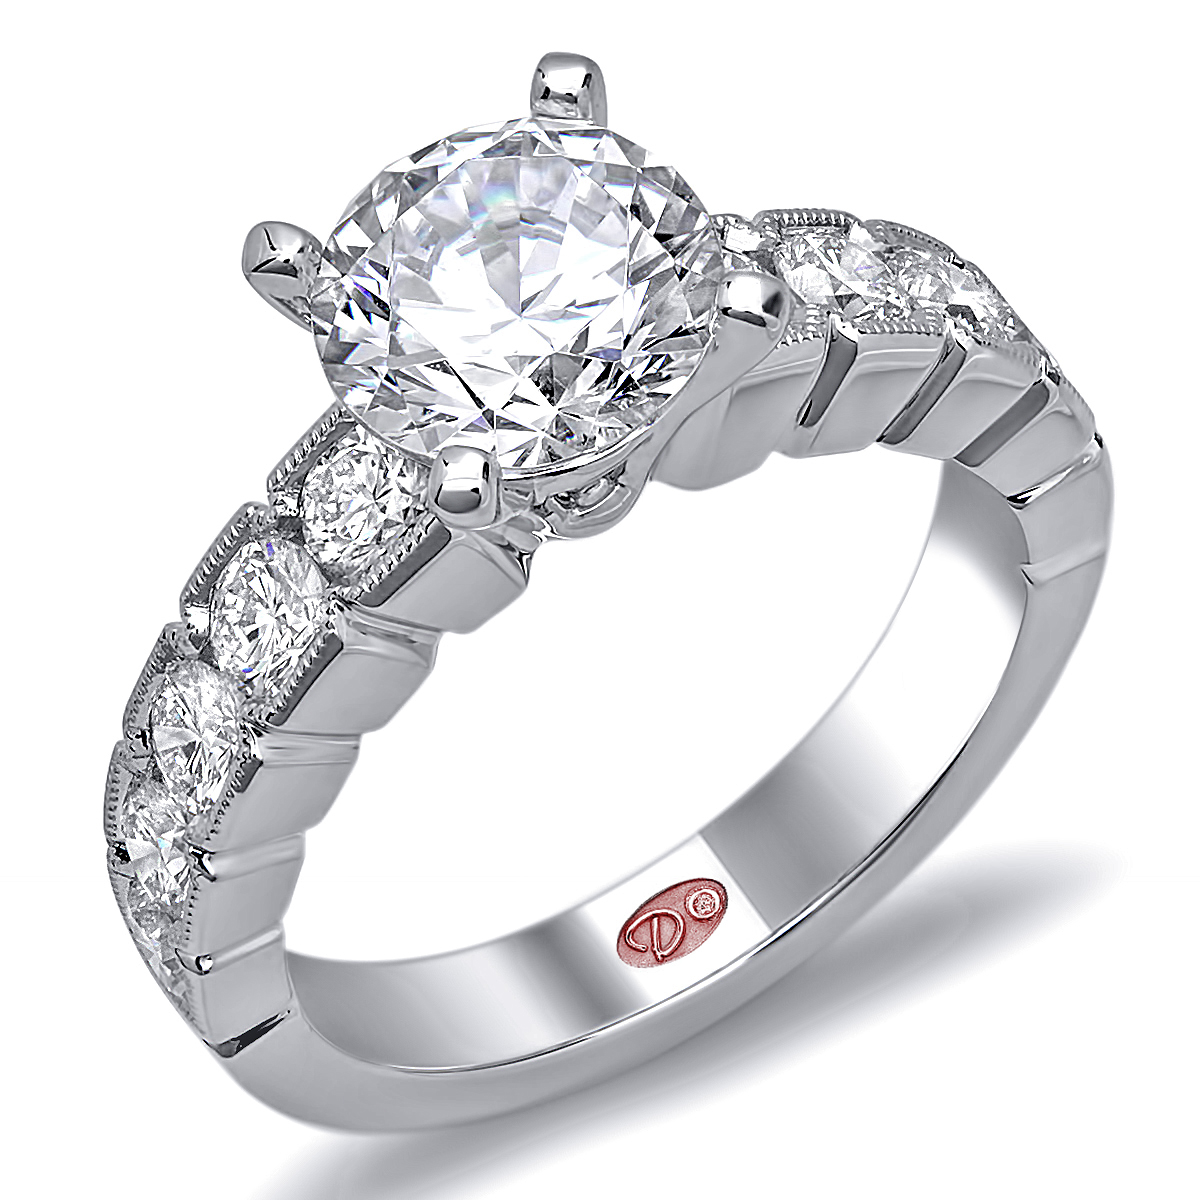 Bridal Jewelry In Los Angeles Demarco Bridal Jewelry Official Blog